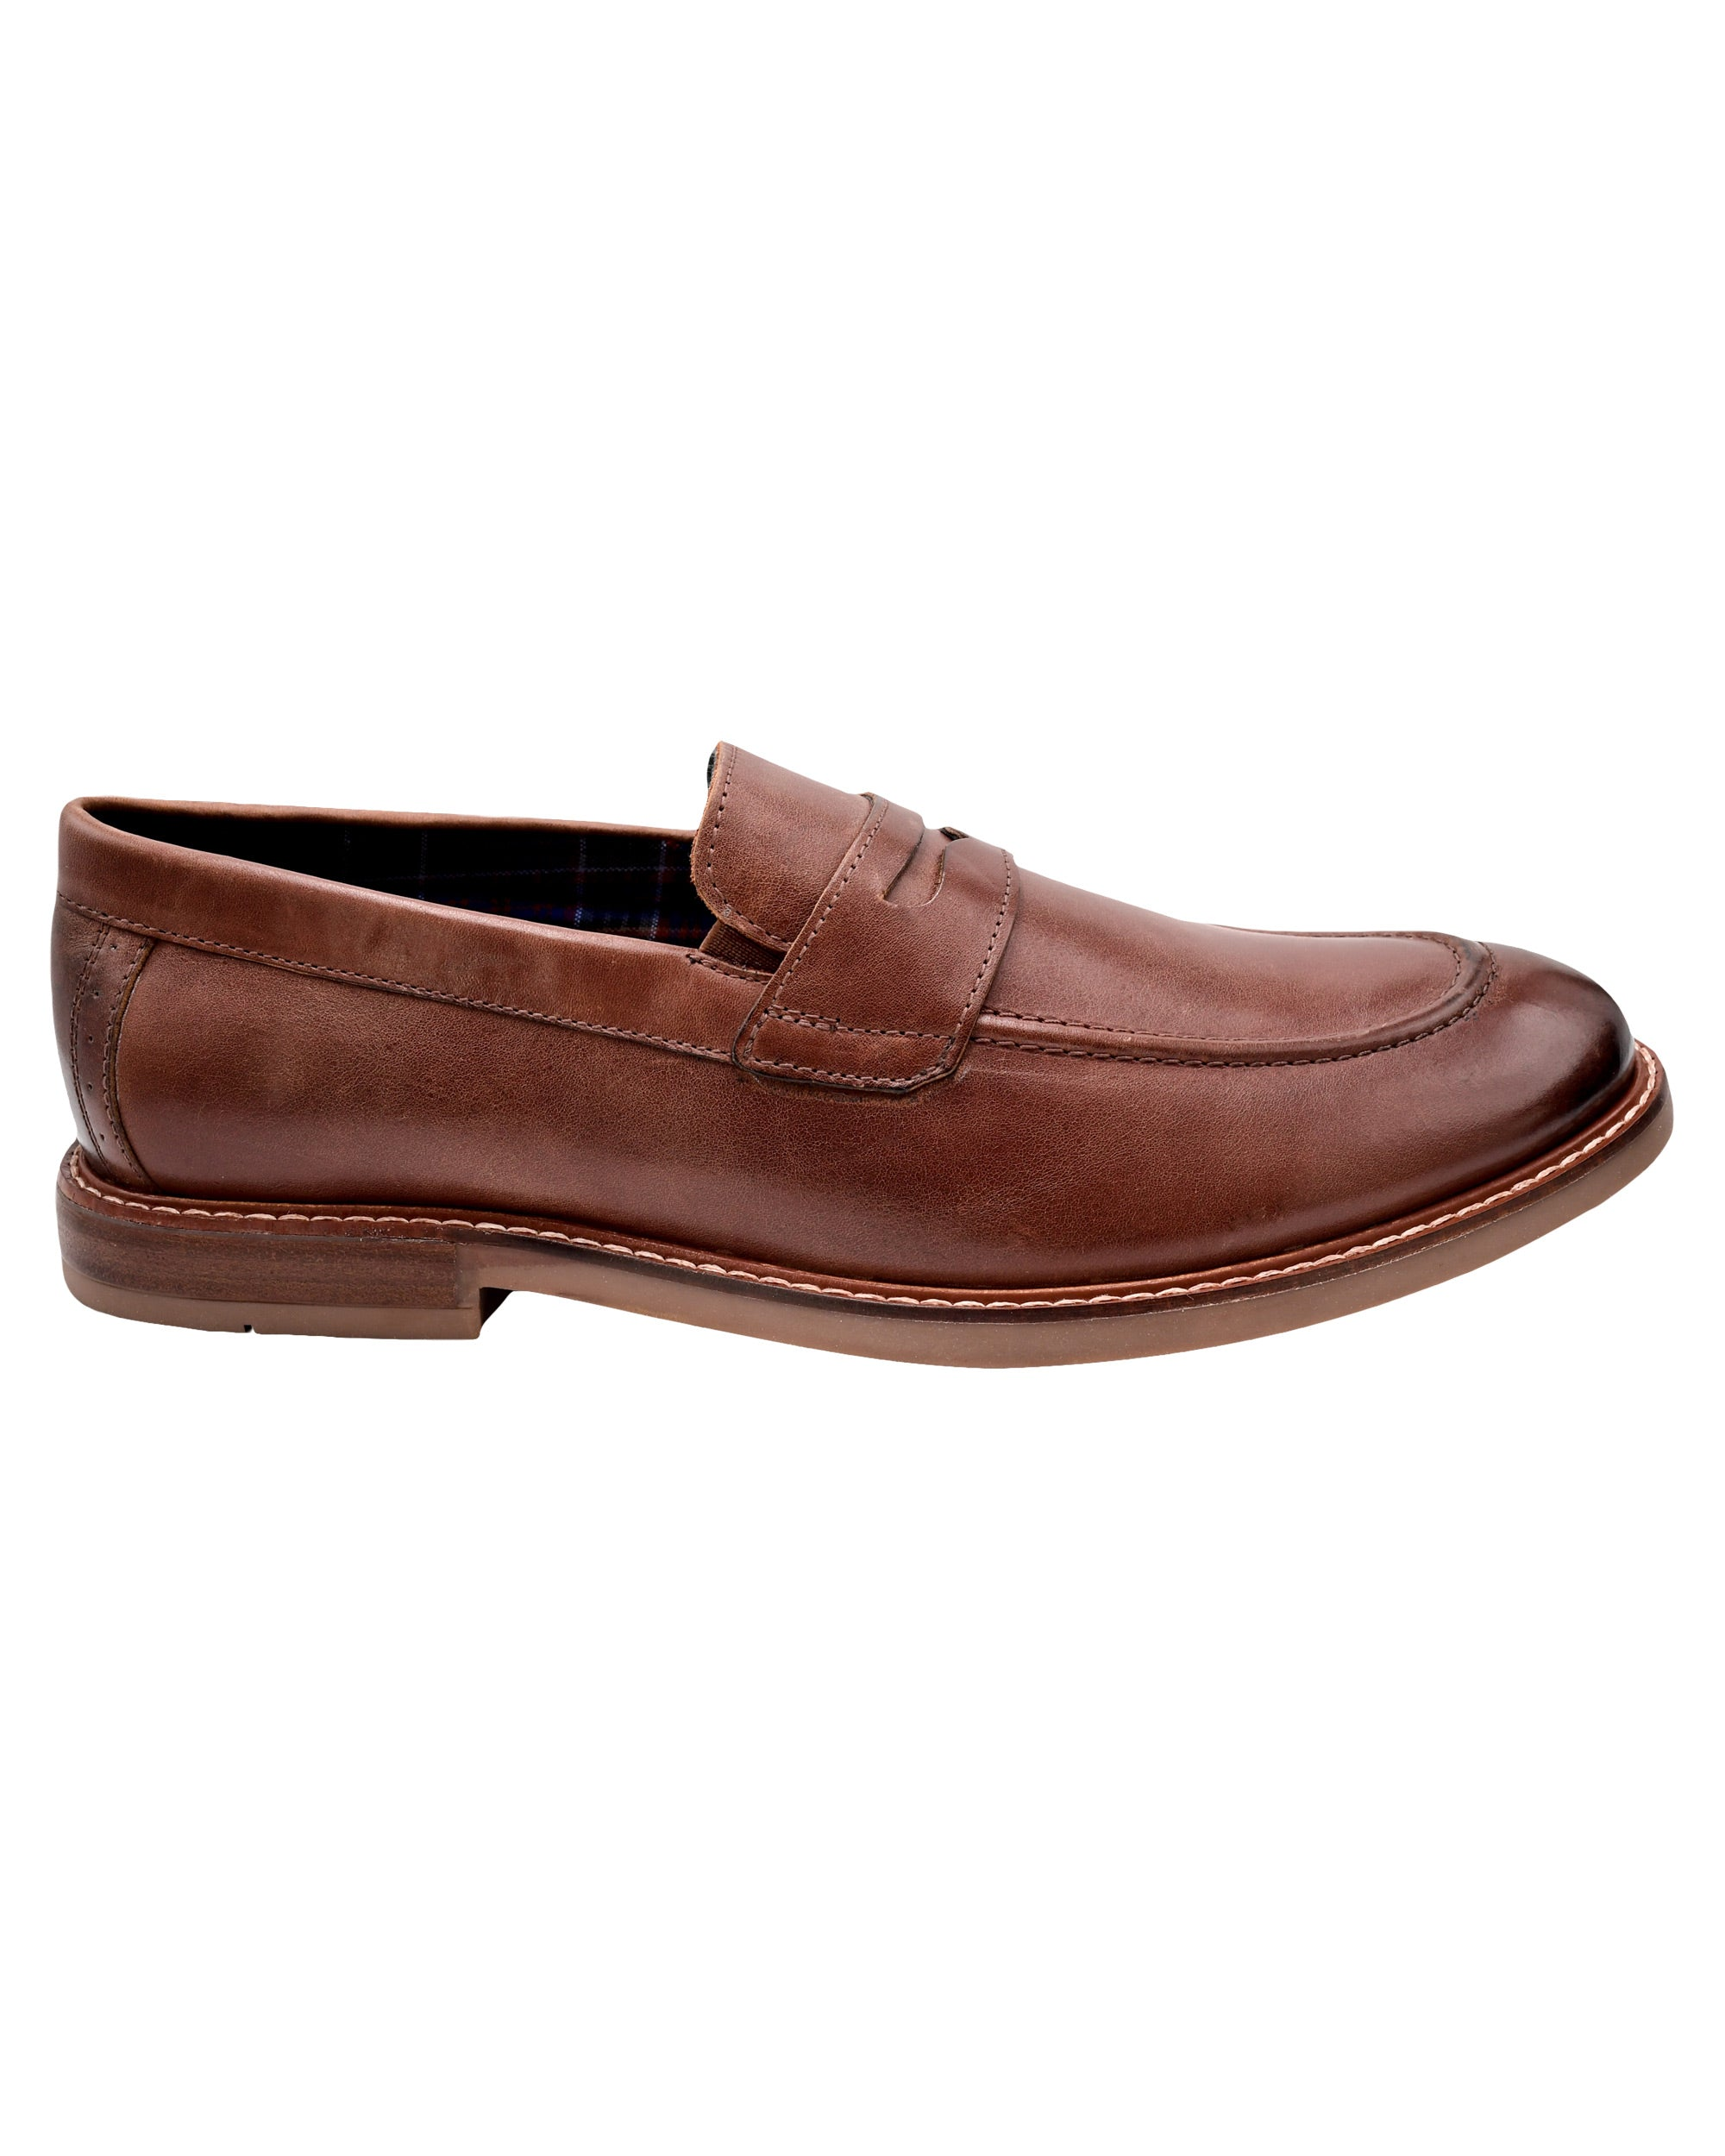 Birk Moc-Toe Leather Penny Loafer - Brown